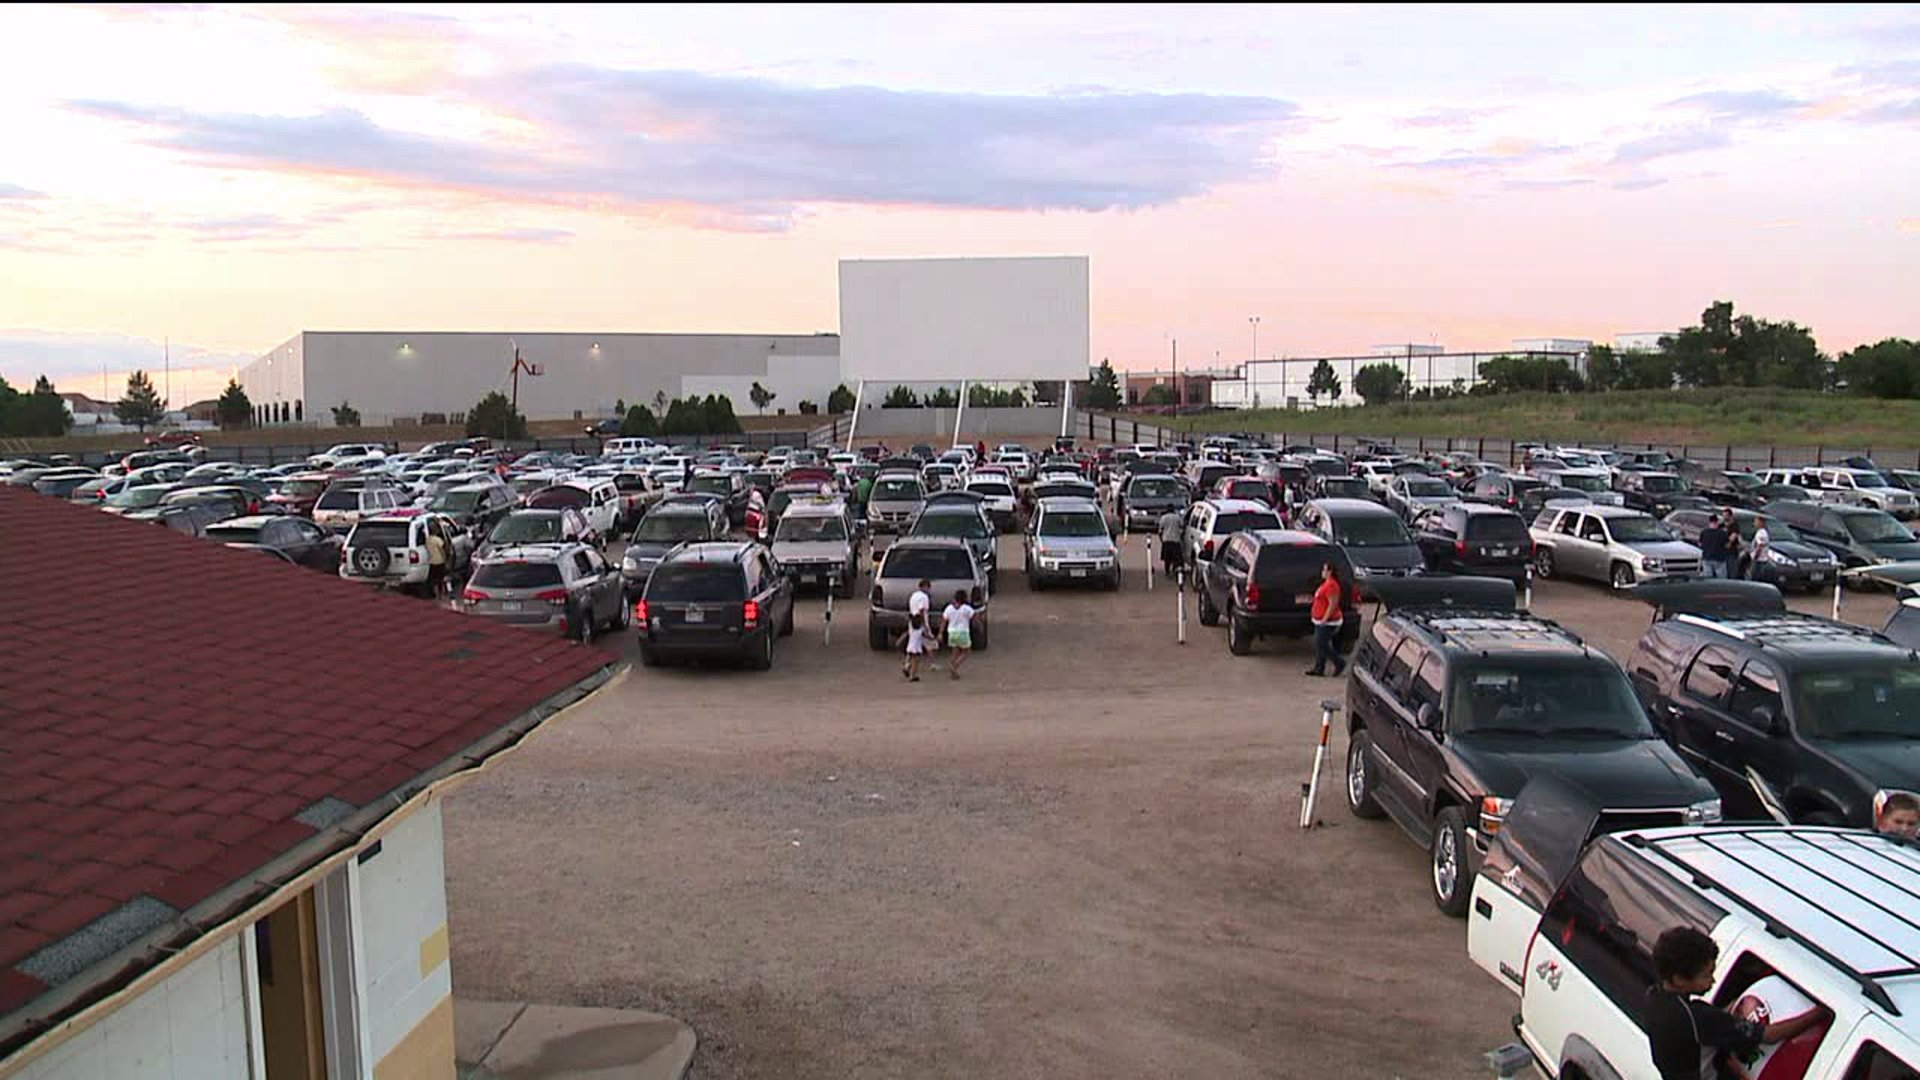 88 Drive-In theater in Commerce City, Colo.